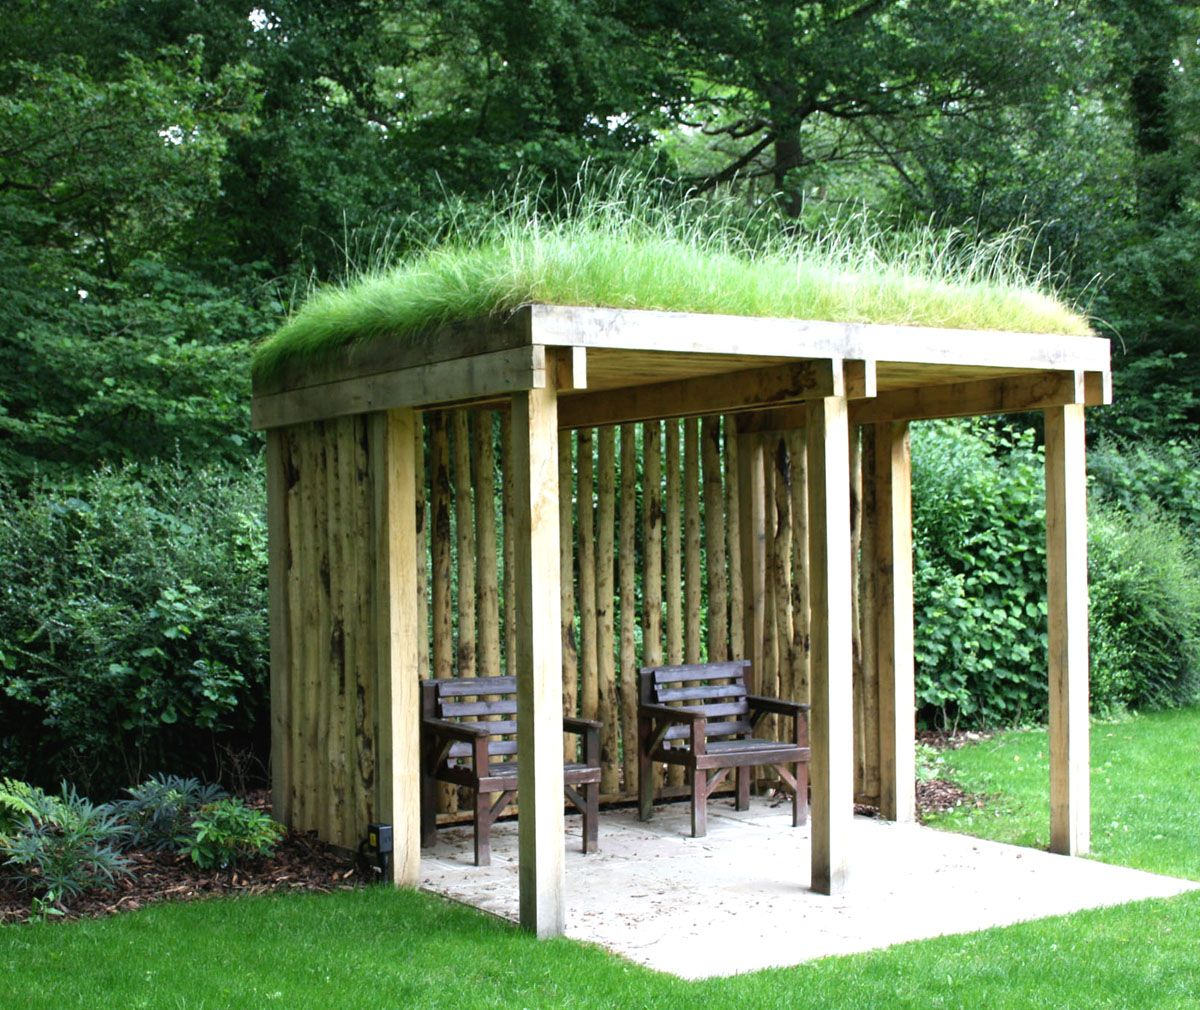 15 Tiny Outdoor Garden Ideas For The Urban Dweller: Green Roof Arbour Designed By Anderson Landscape Design